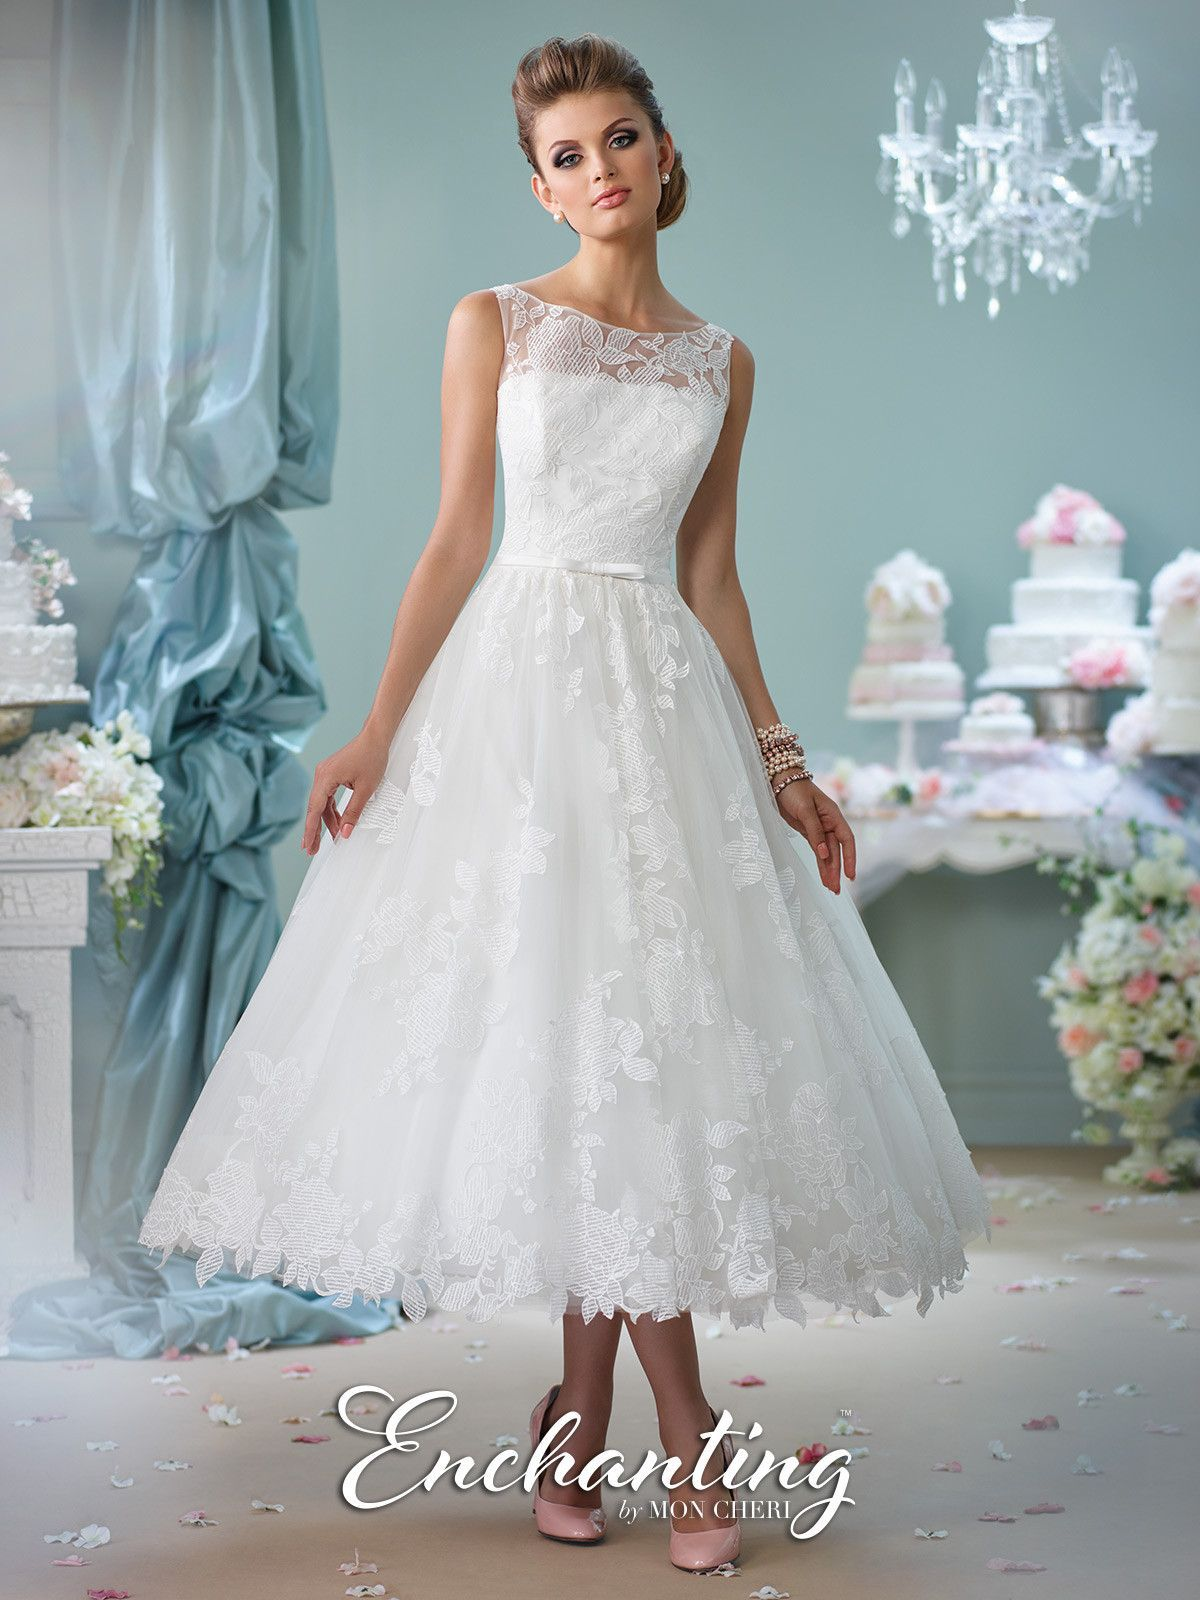 Enchanting - 116136 - All Dressed Up, Bridal Gown | Tea length, Full ...